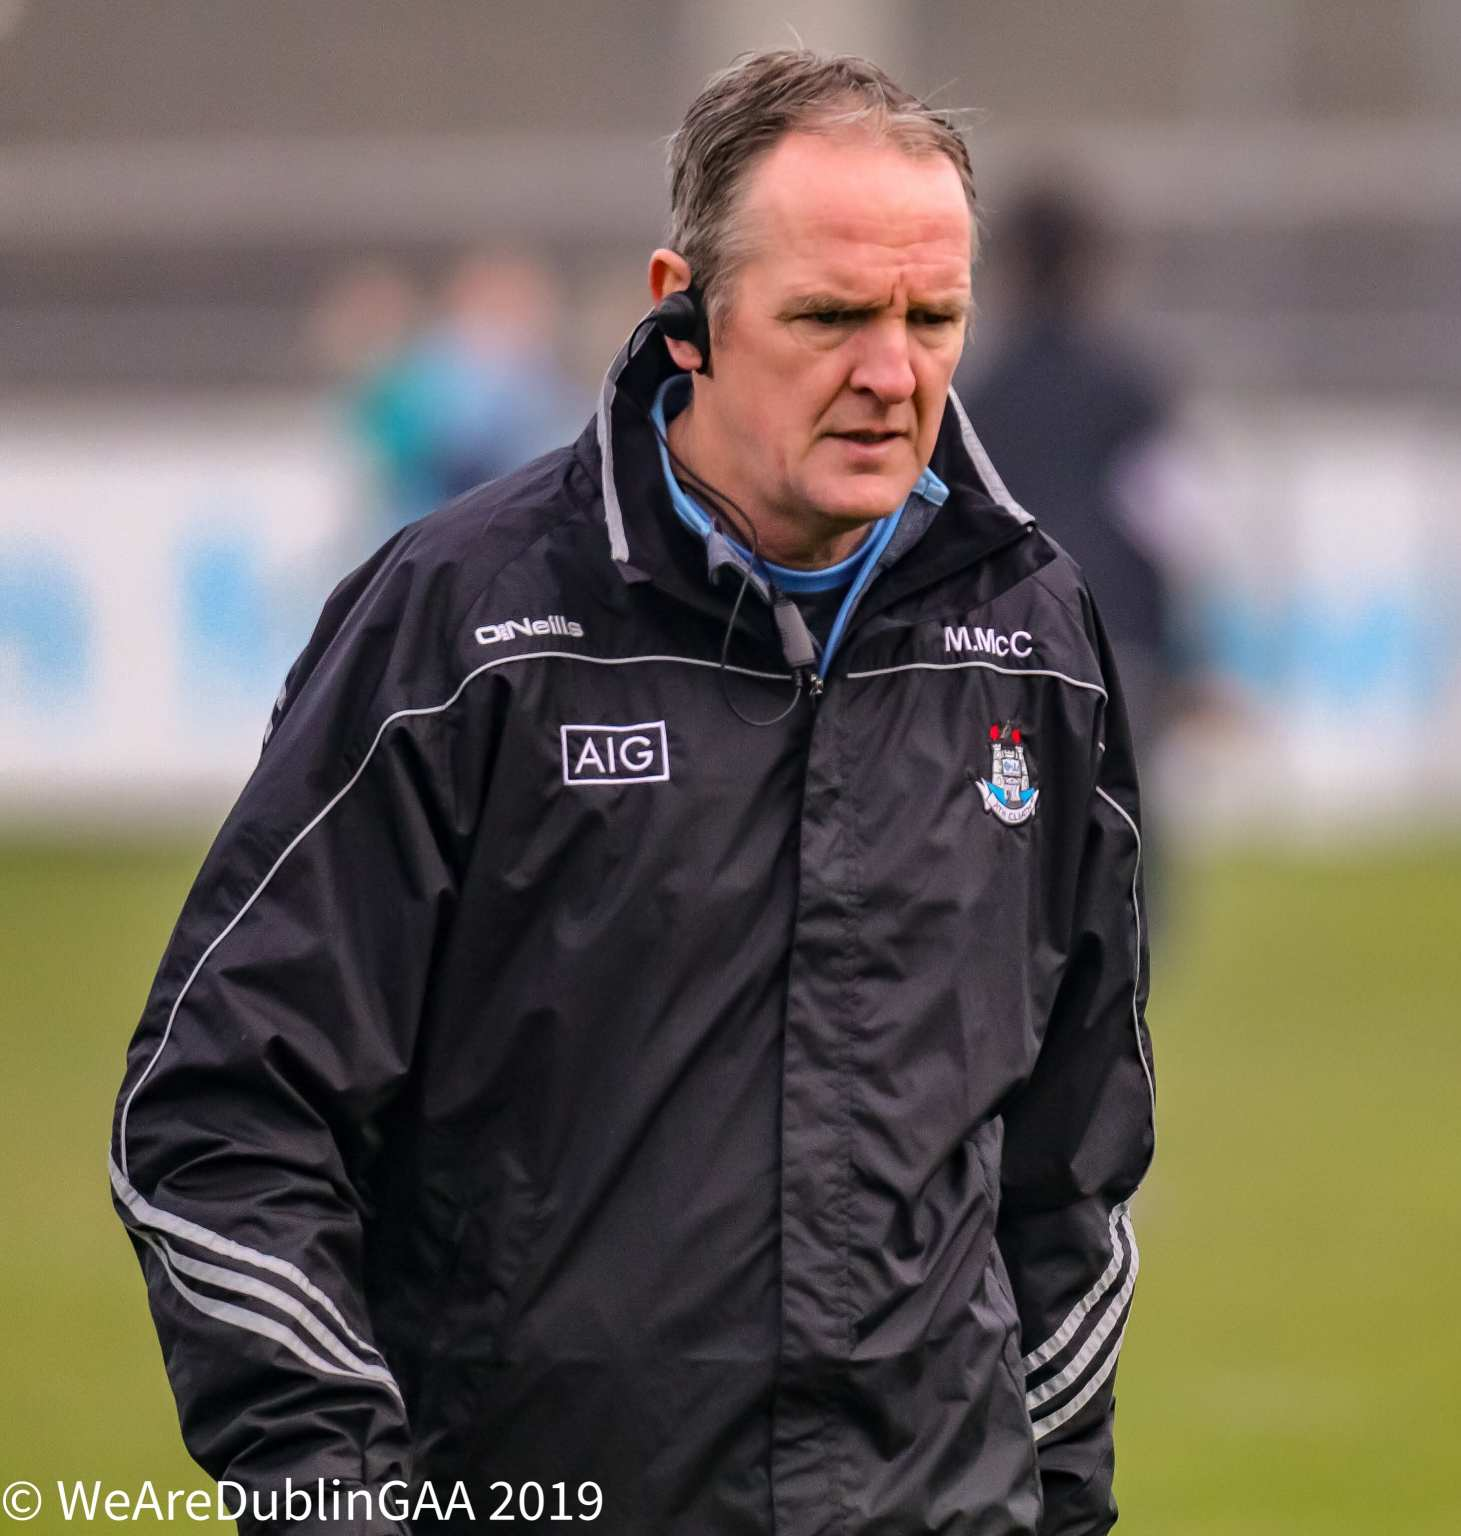 Dublin Hurling Manager Mattie Kenny In a black rain jacket with Dublin crest.